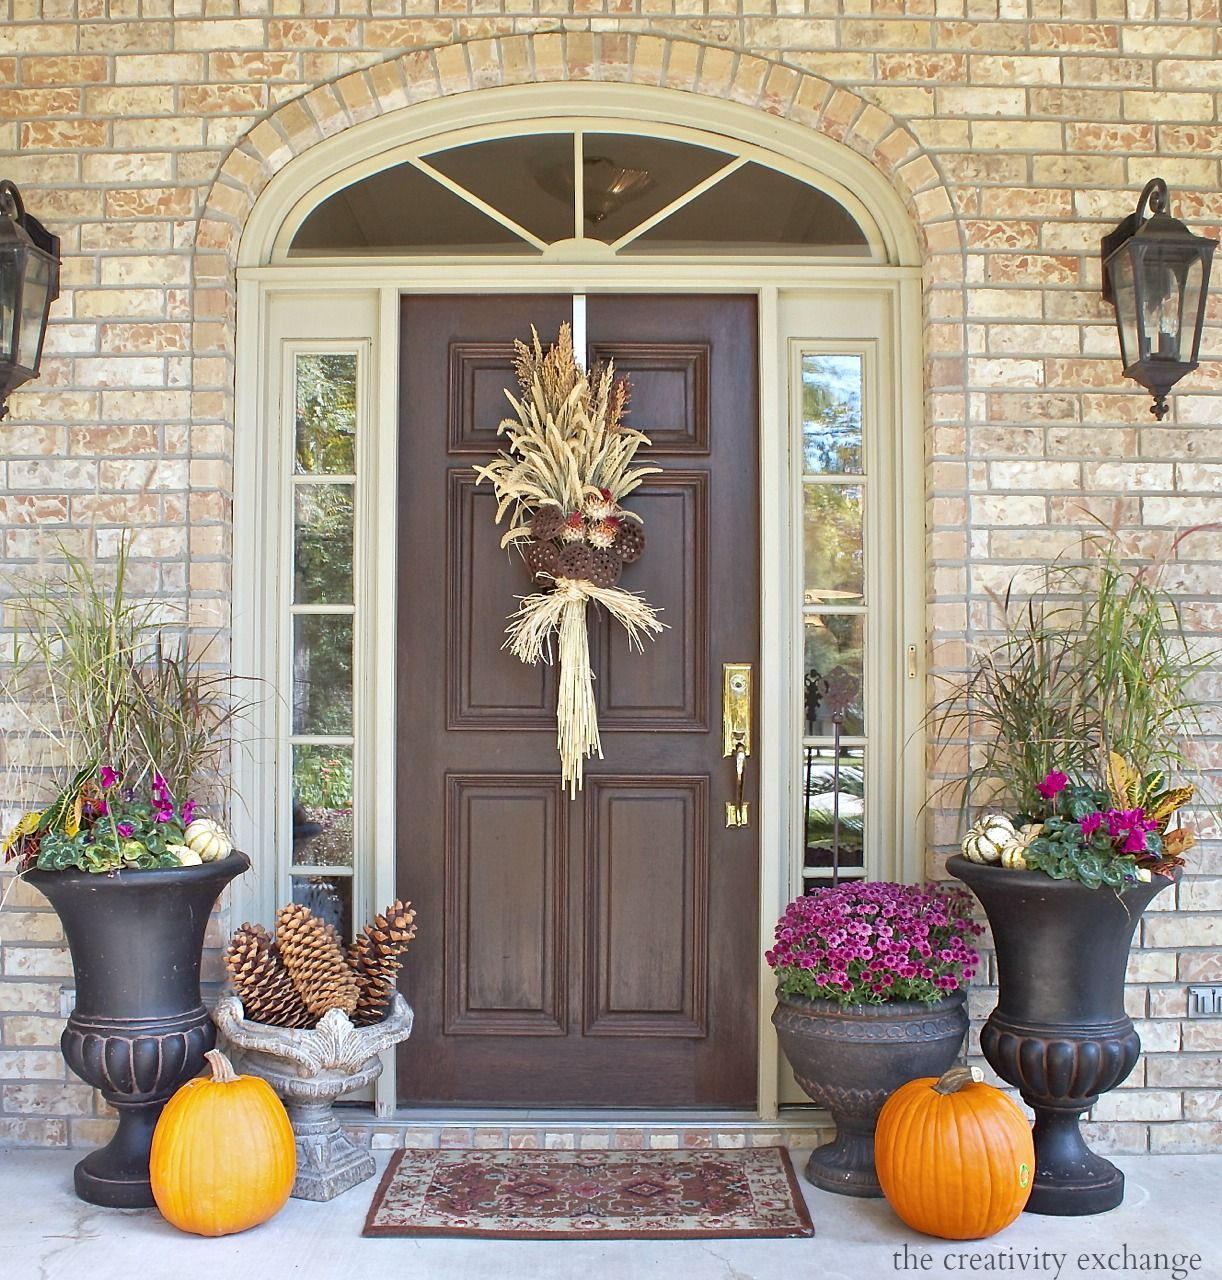 Uncategorized Fall Porch Decorating Ideas Pictures mix tall grasses fall plants and small pumpkins together in large front porch decorating ideas the creativity exchange